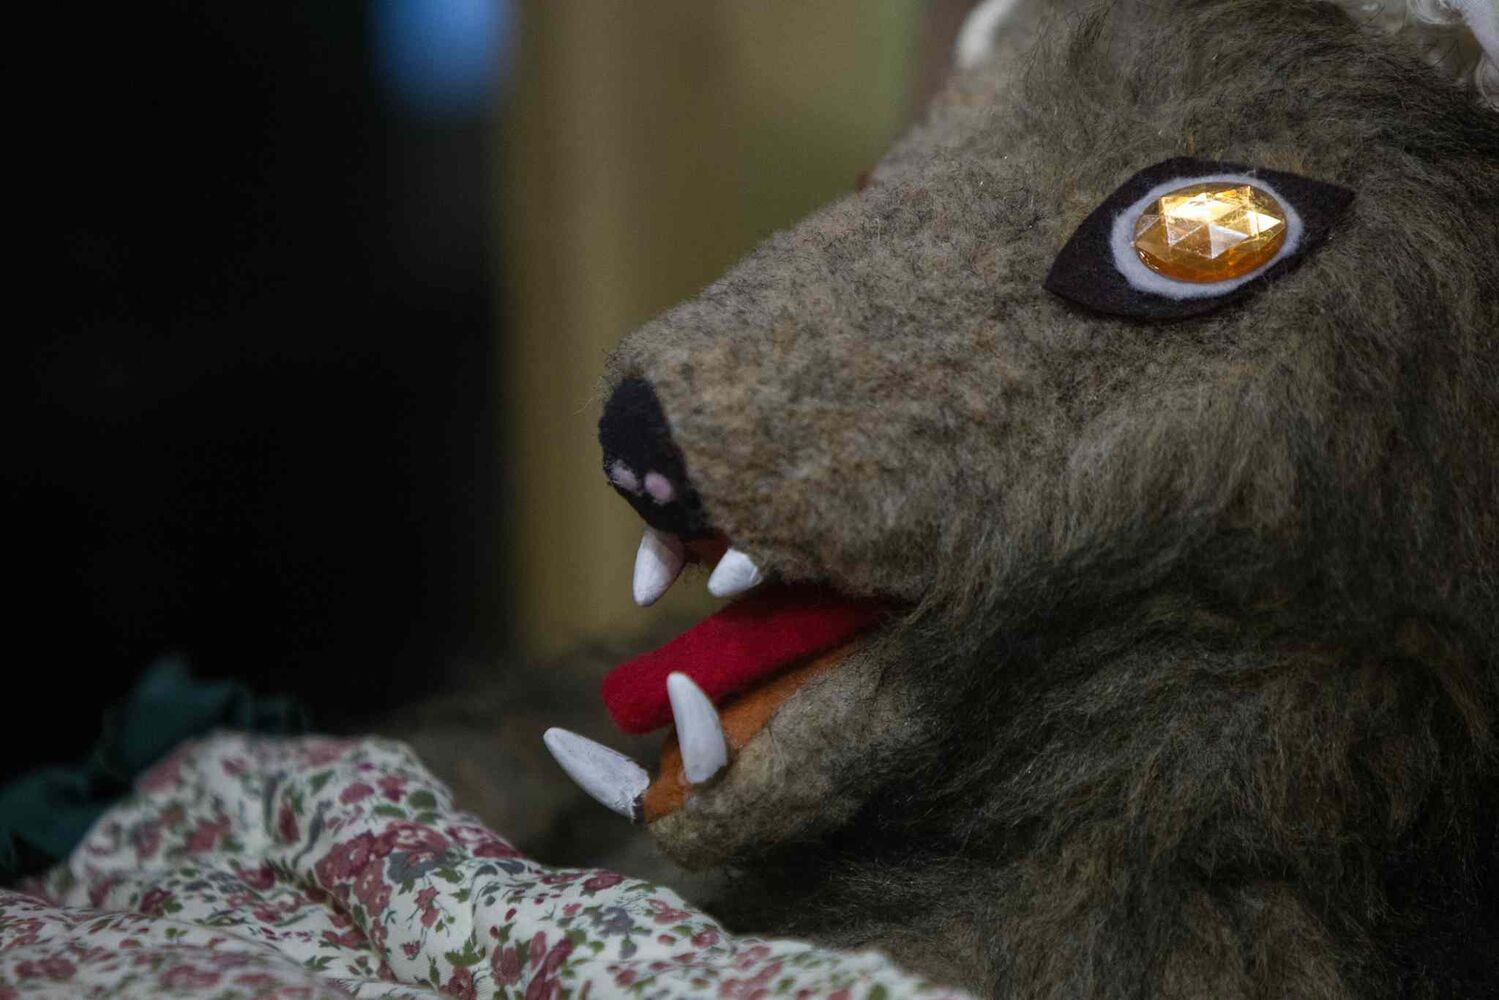 The wolf in the Little Red Riding Hood display. (MIKE DEAL / WINNIPEG FREE PRESS)